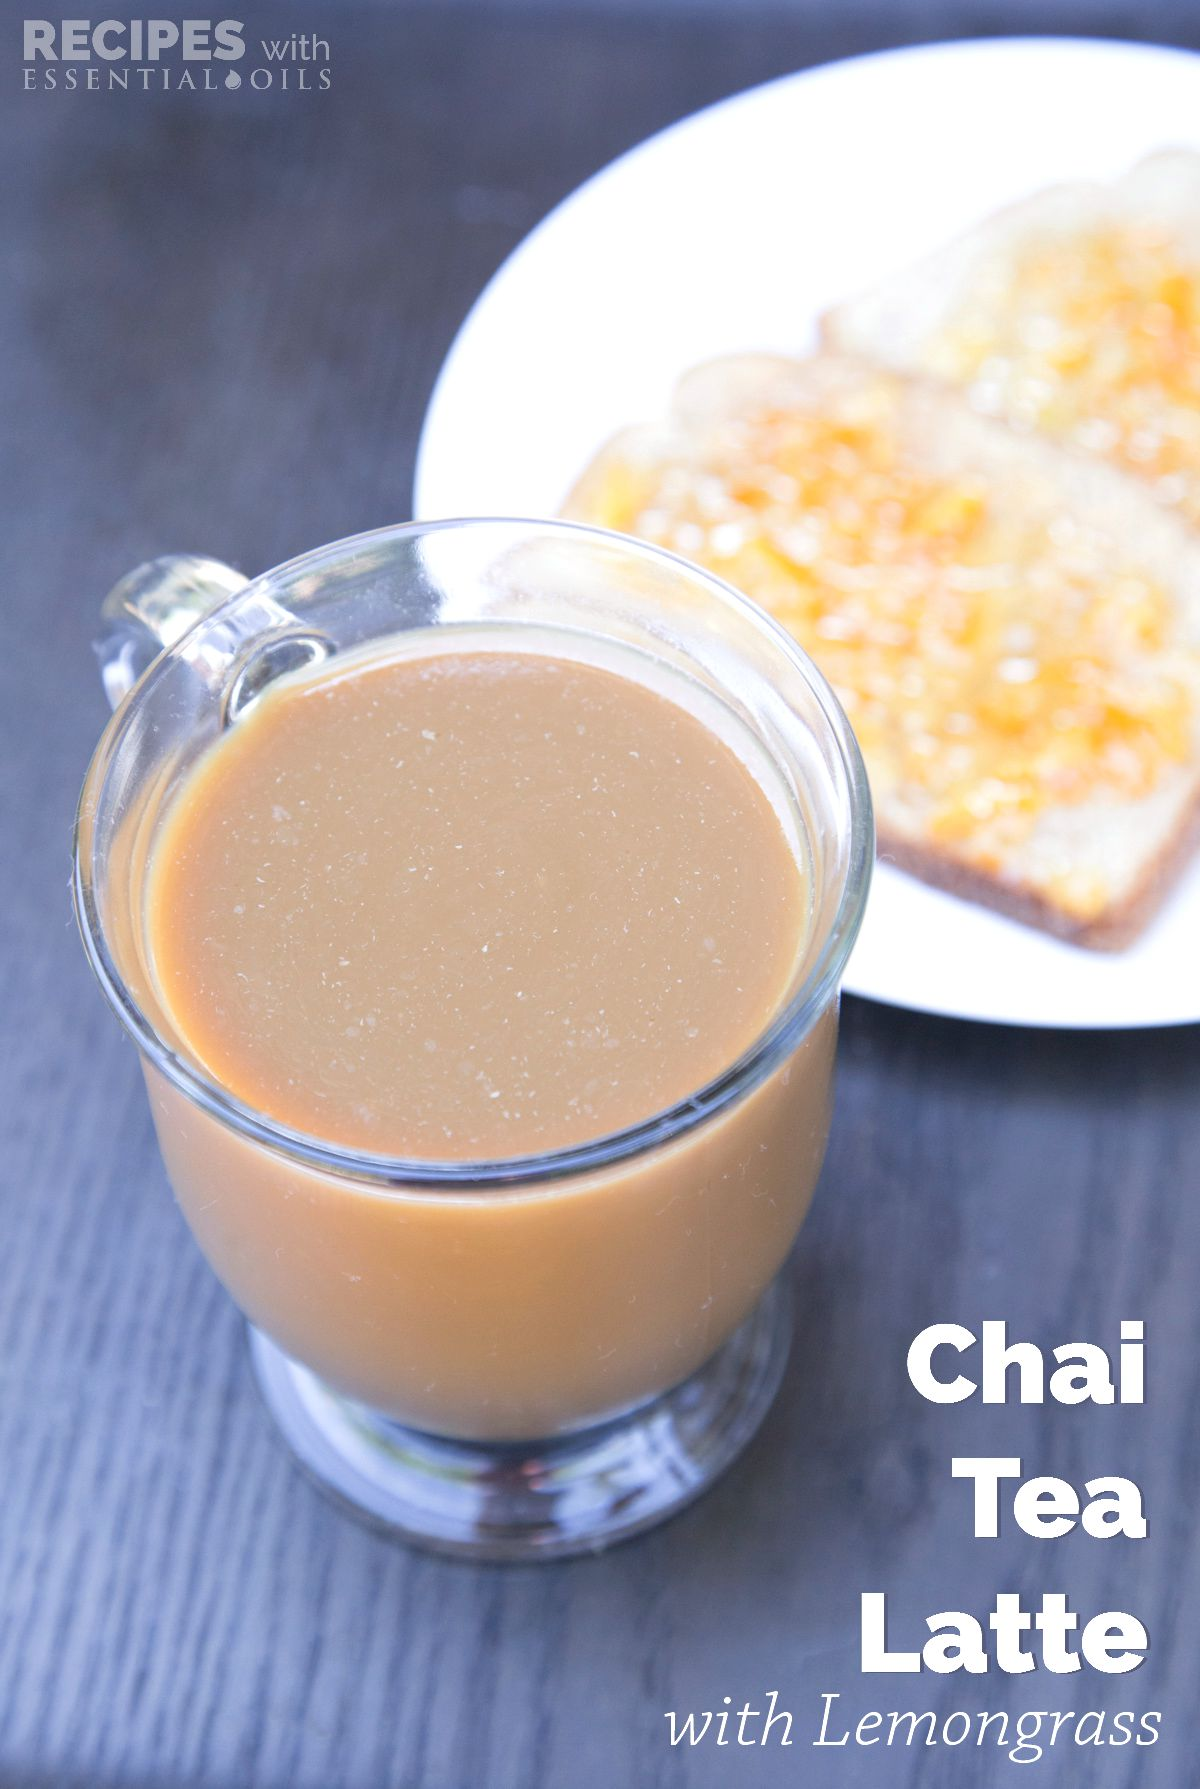 Chai Tea Latte with Lemongrass Essential Oil from RecipesWithEssentialOils.com